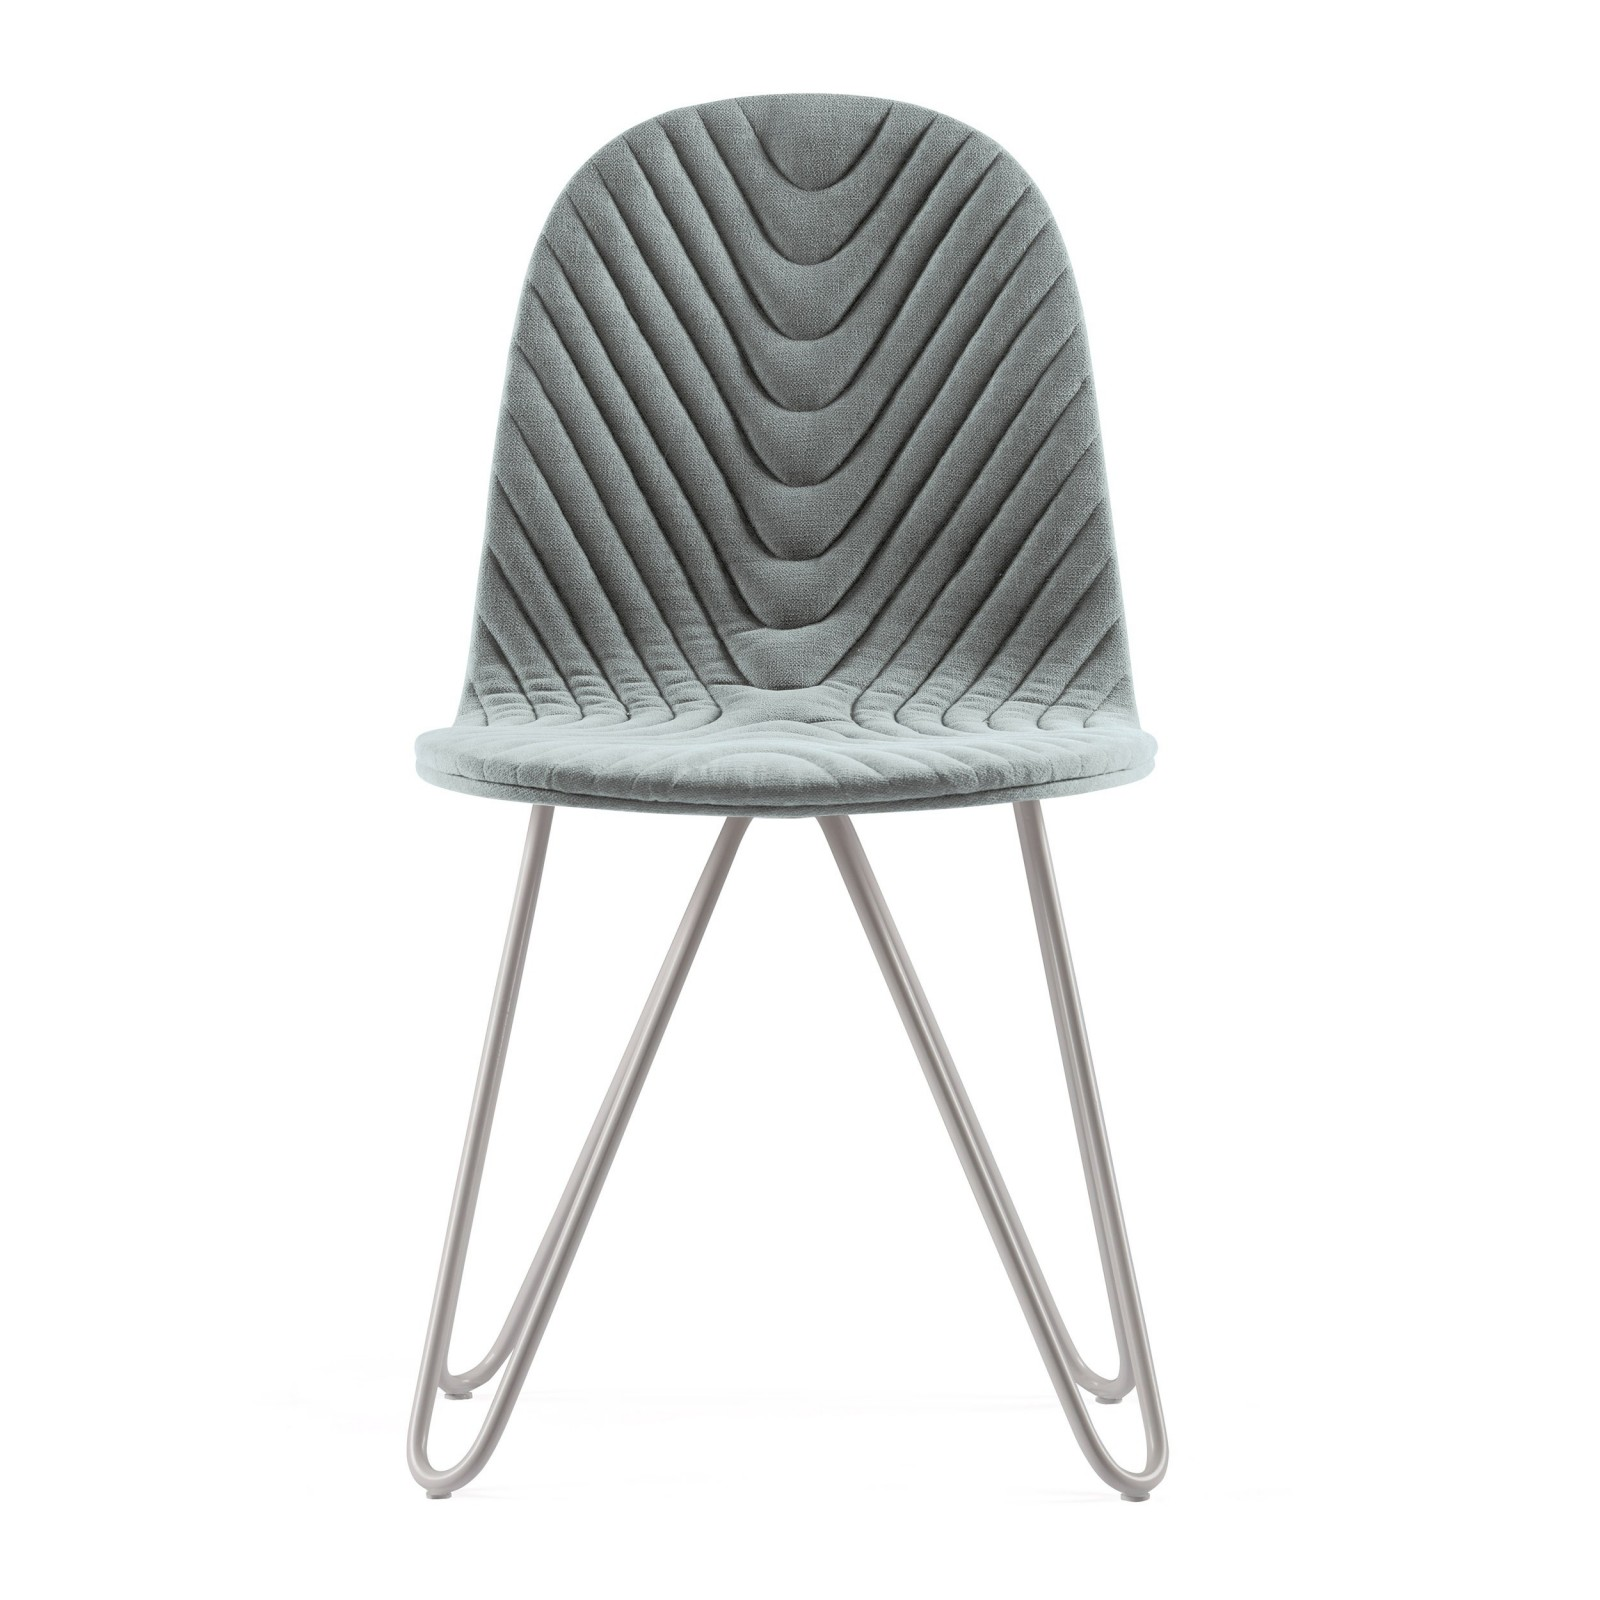 Mannequin chair - 03 - grey